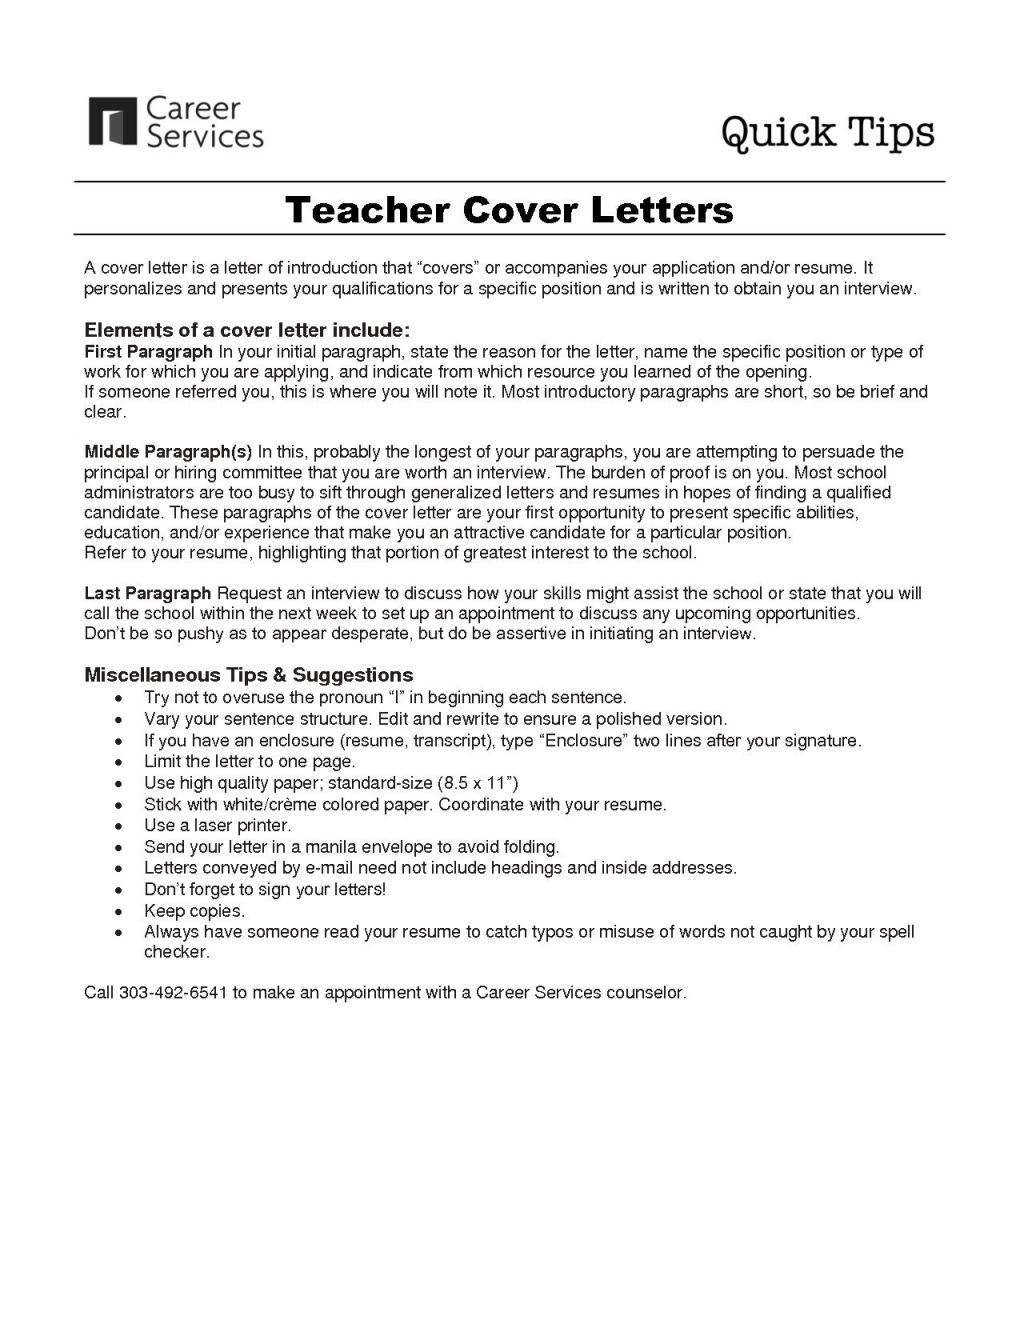 Linkedin Cover Letter Template - top Linkedin Cover Bm32 – Documentaries for Change